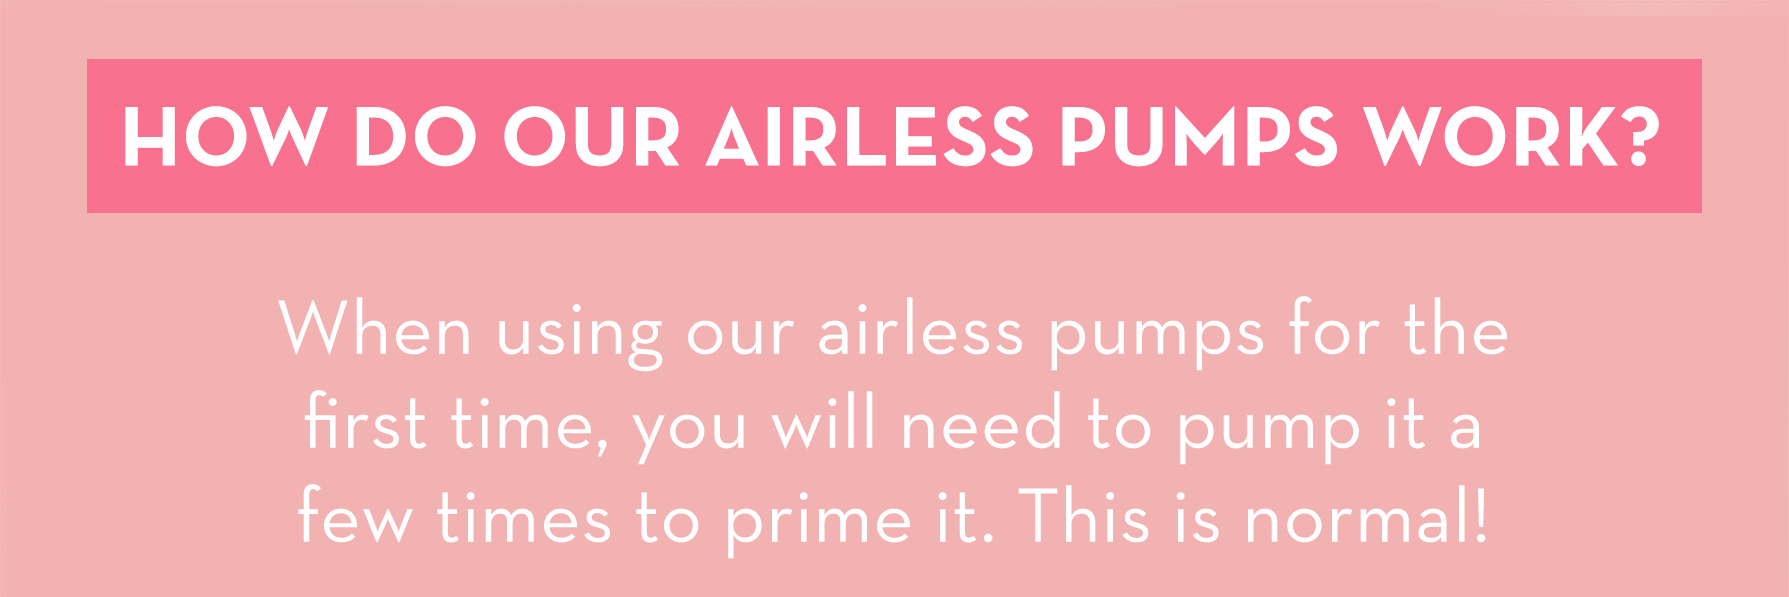 How Do Airless Pumps Work